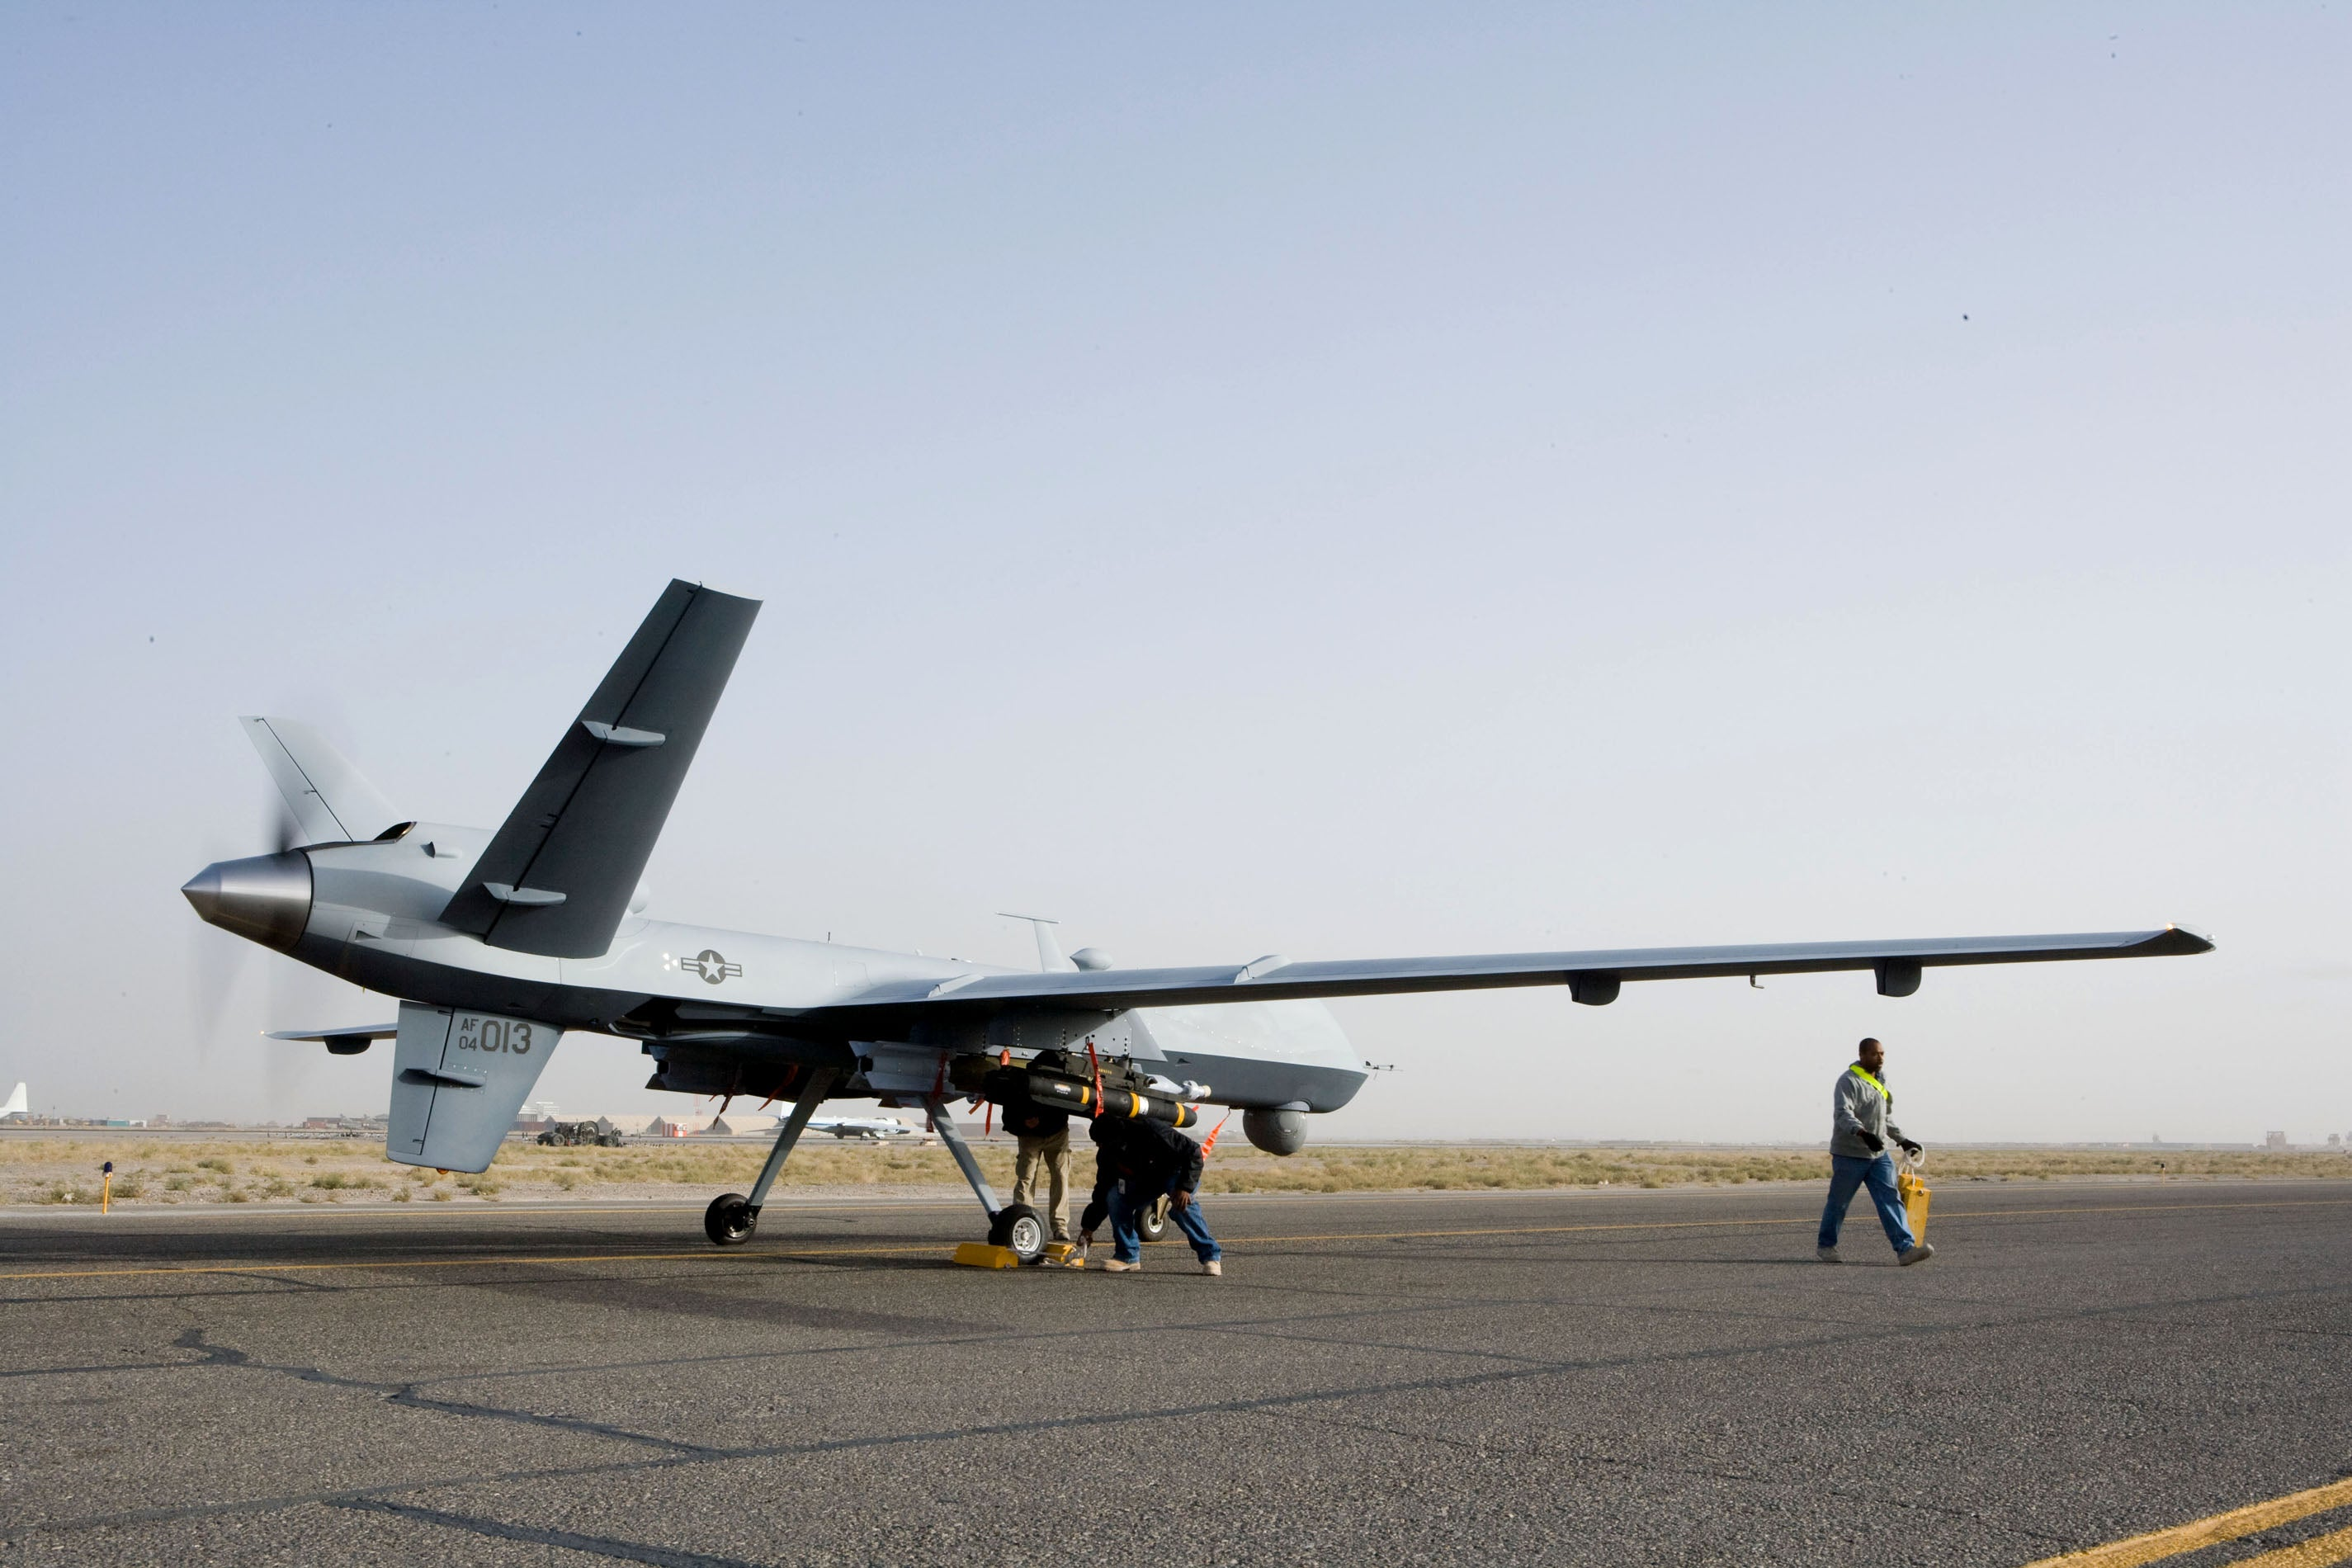 The Air Force Can't Figure Out How to Stop Its Drones From Falling Out of the Sky